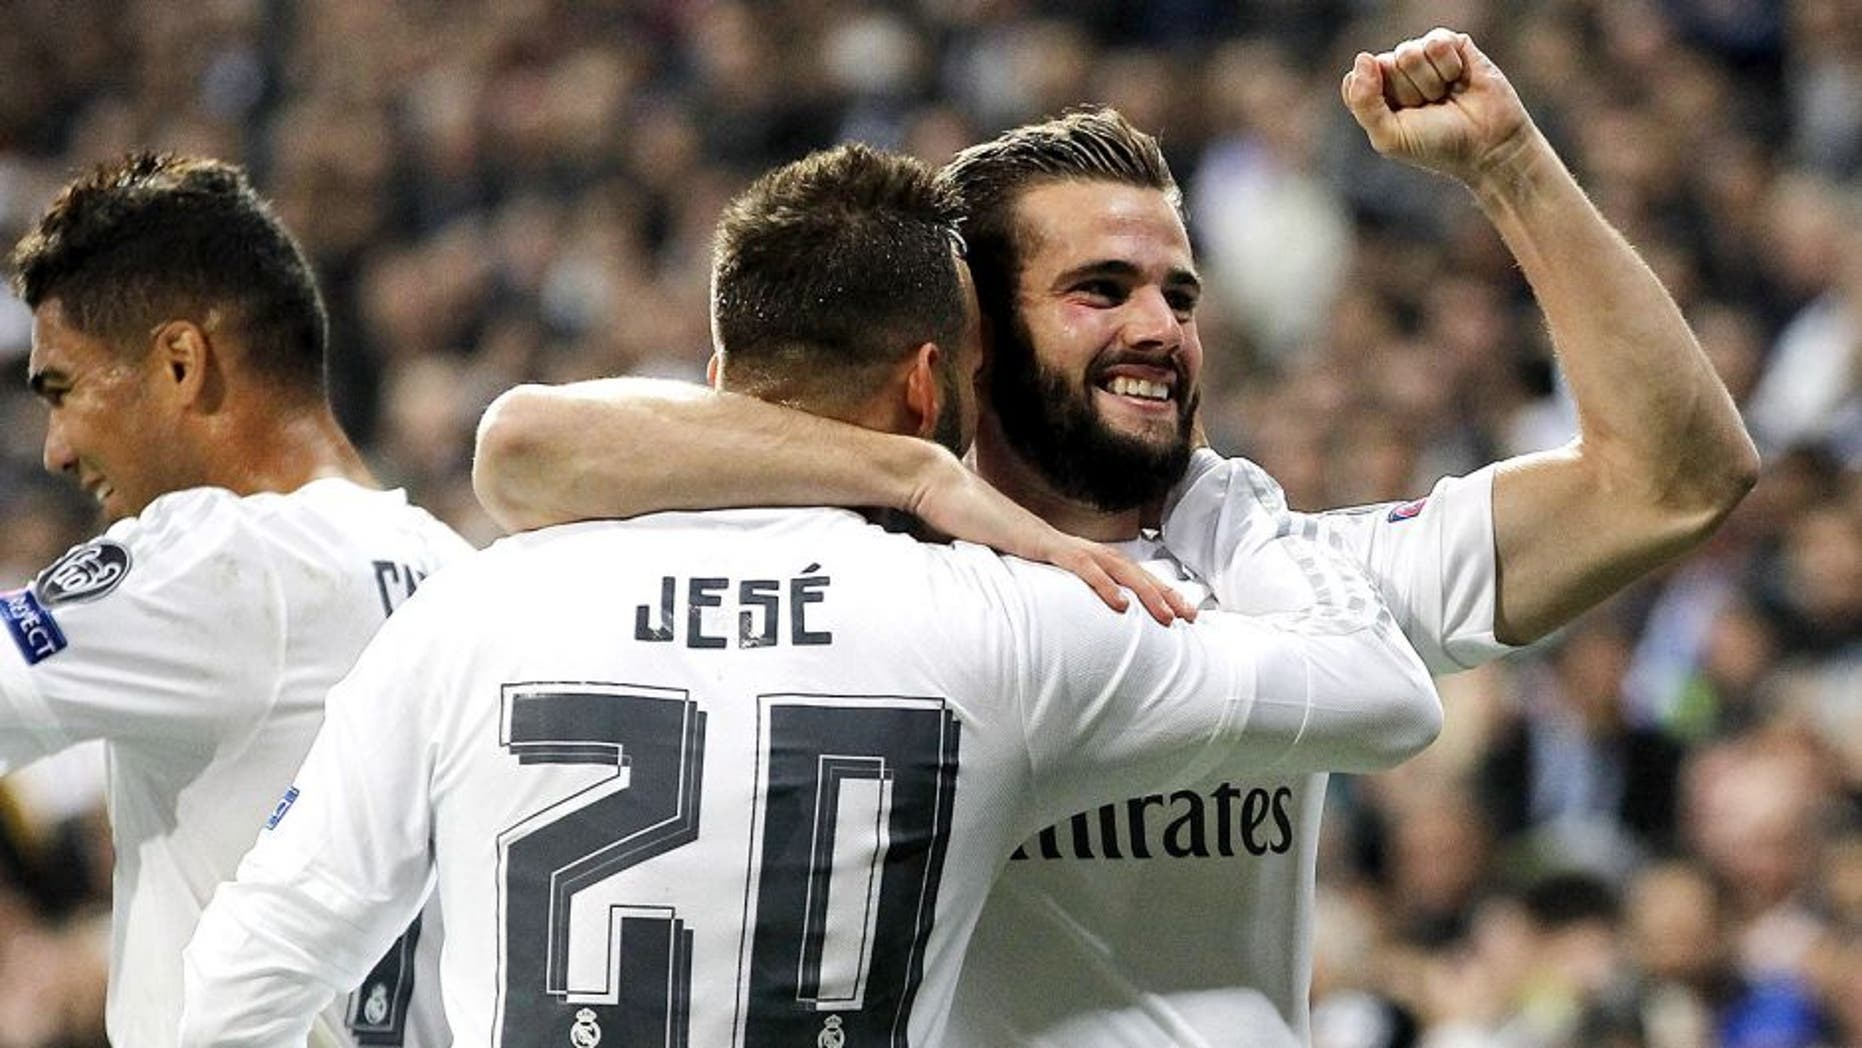 MADRID, SPAIN - NOVEMBER 03: Nacho Fernandez (R) of Real Madrid celebrates with Jese Rodriguez after scoring the opening goal during the UEFA Champions League Group A match between Real Madrid and Paris Saint-Germain at Estadio Santiago Bernabeu on November 3, 2015 in Madrid, Spain. (Photo by Angel Martinez/Real Madrid via Getty Images)